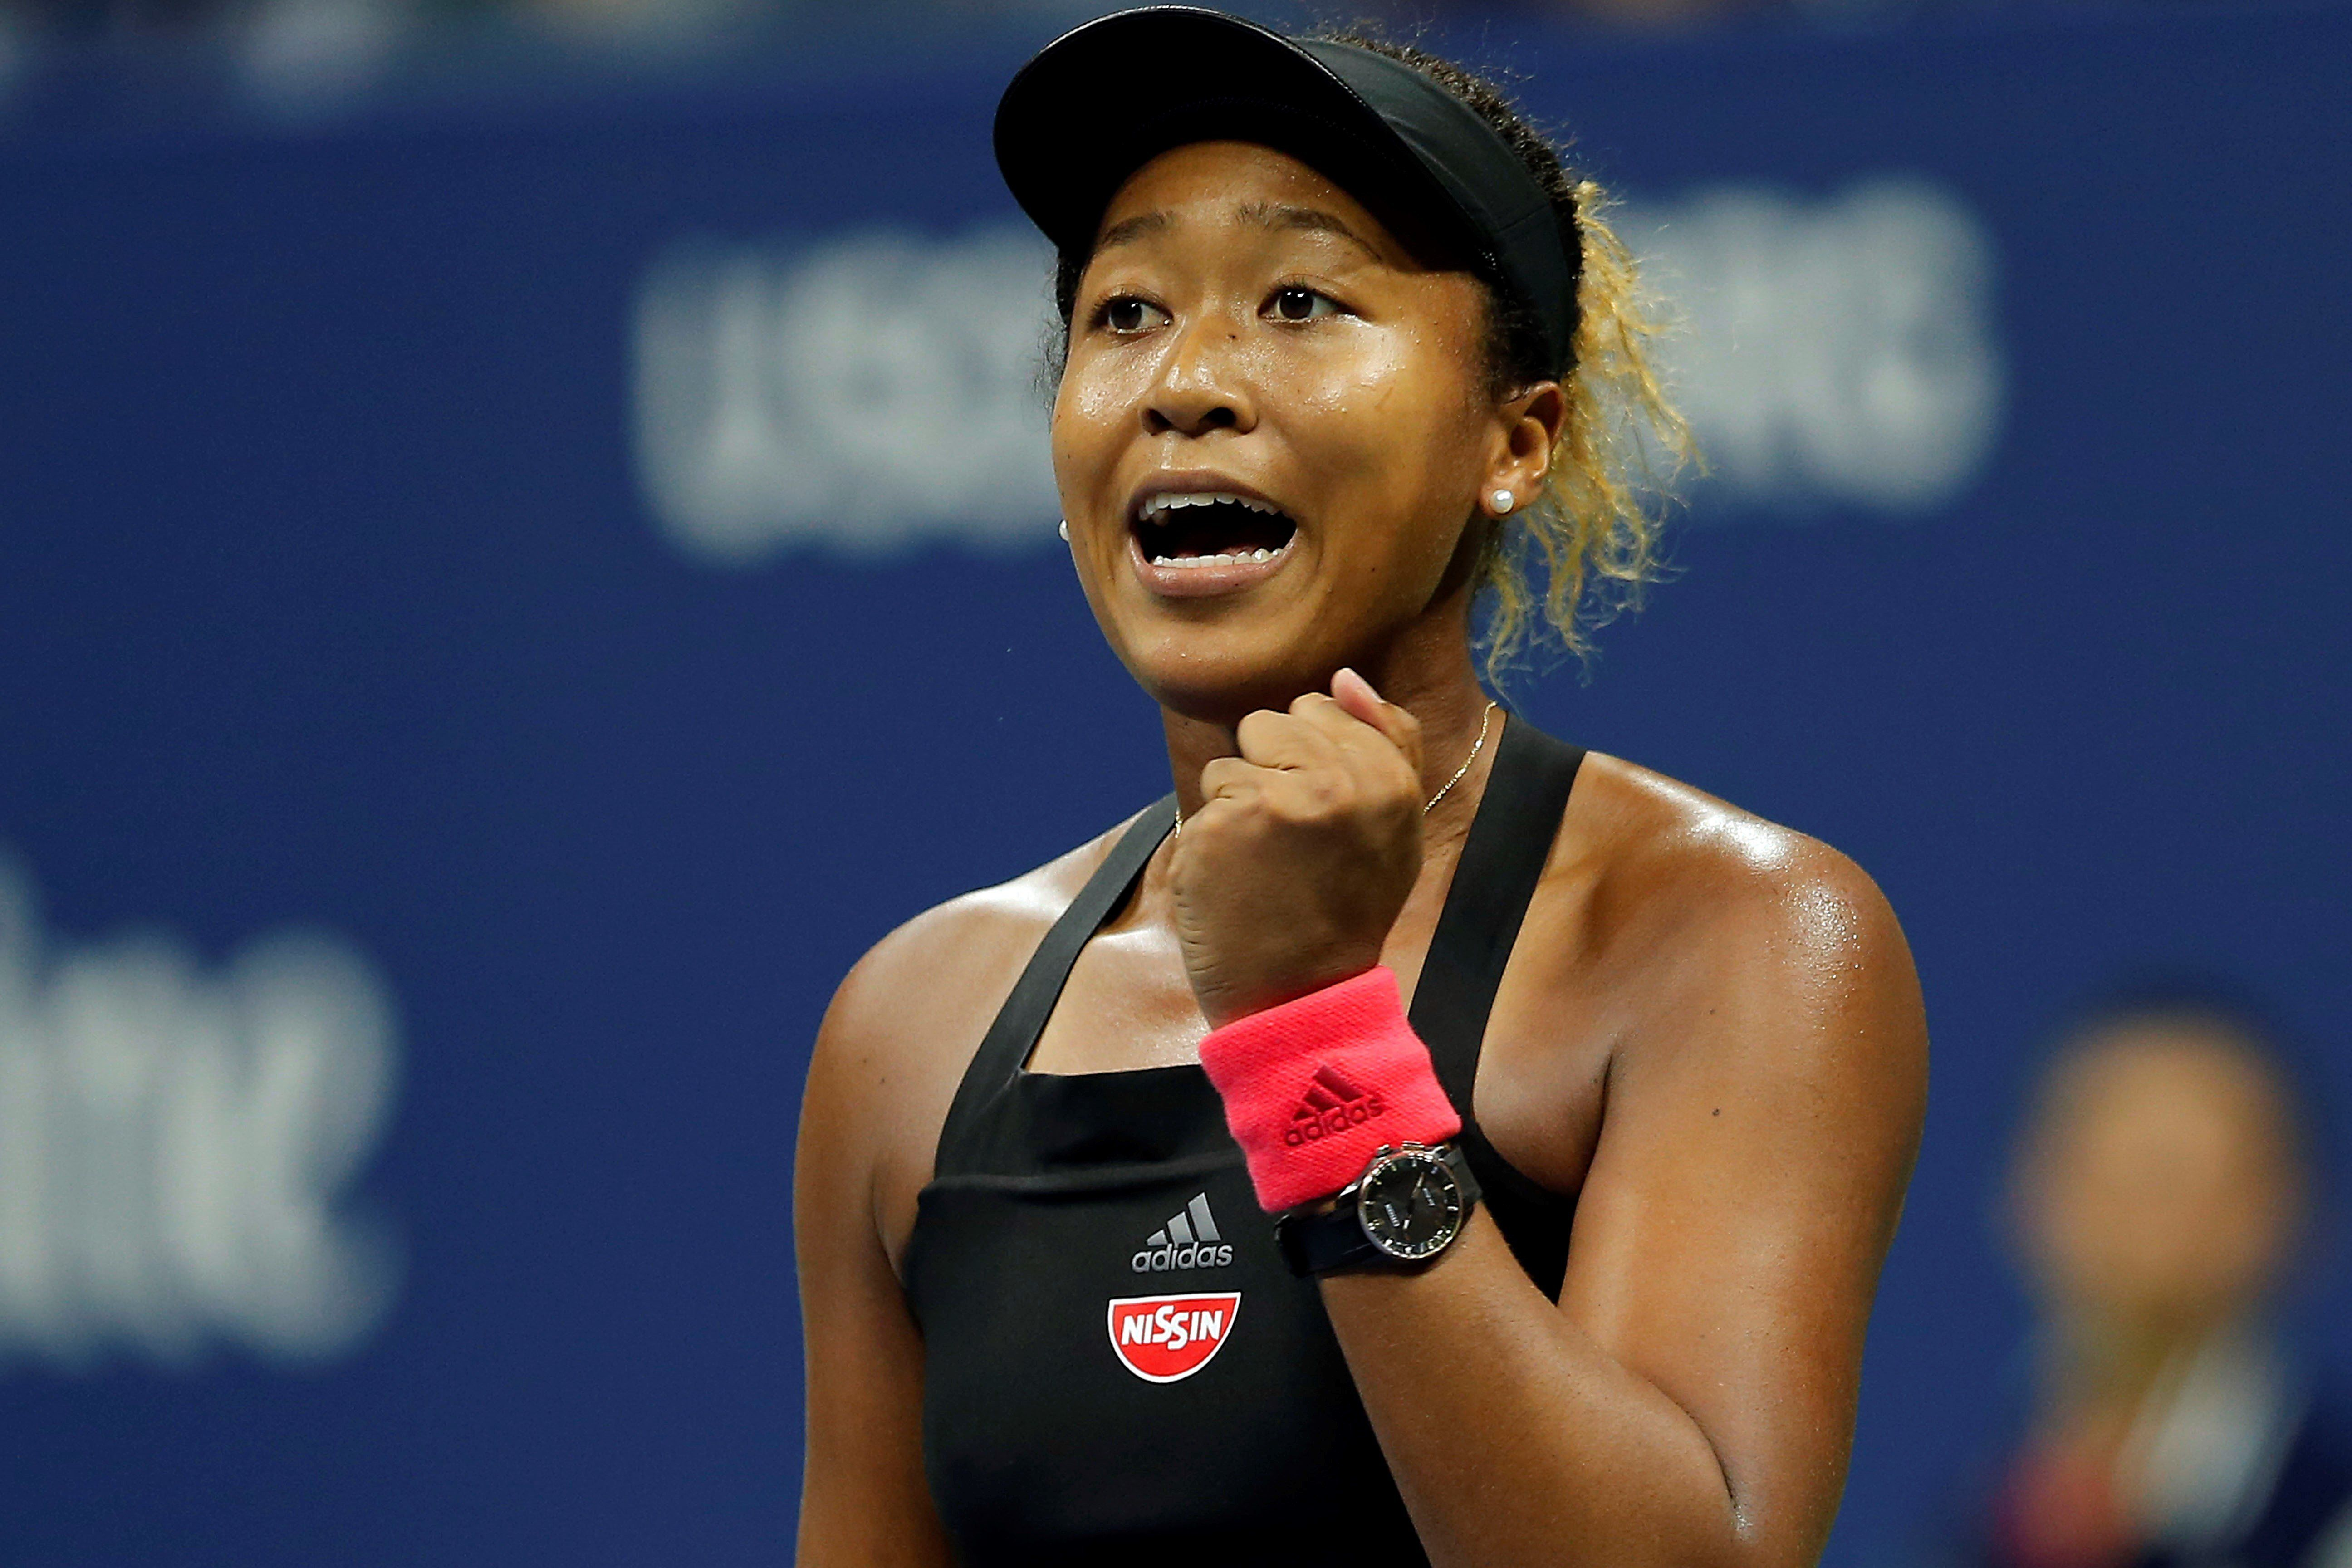 NEW YORK, USA - SEPTEMBER 6:  Naomi Osaka of Japan celebrates her win against Madison Keys (not seen) of USA in US Open 2018 women's singles semi-final match on September 6, 2018 in New York, United States. (Photo by Mohammed Elshamy/Anadolu Agency/Getty Images)